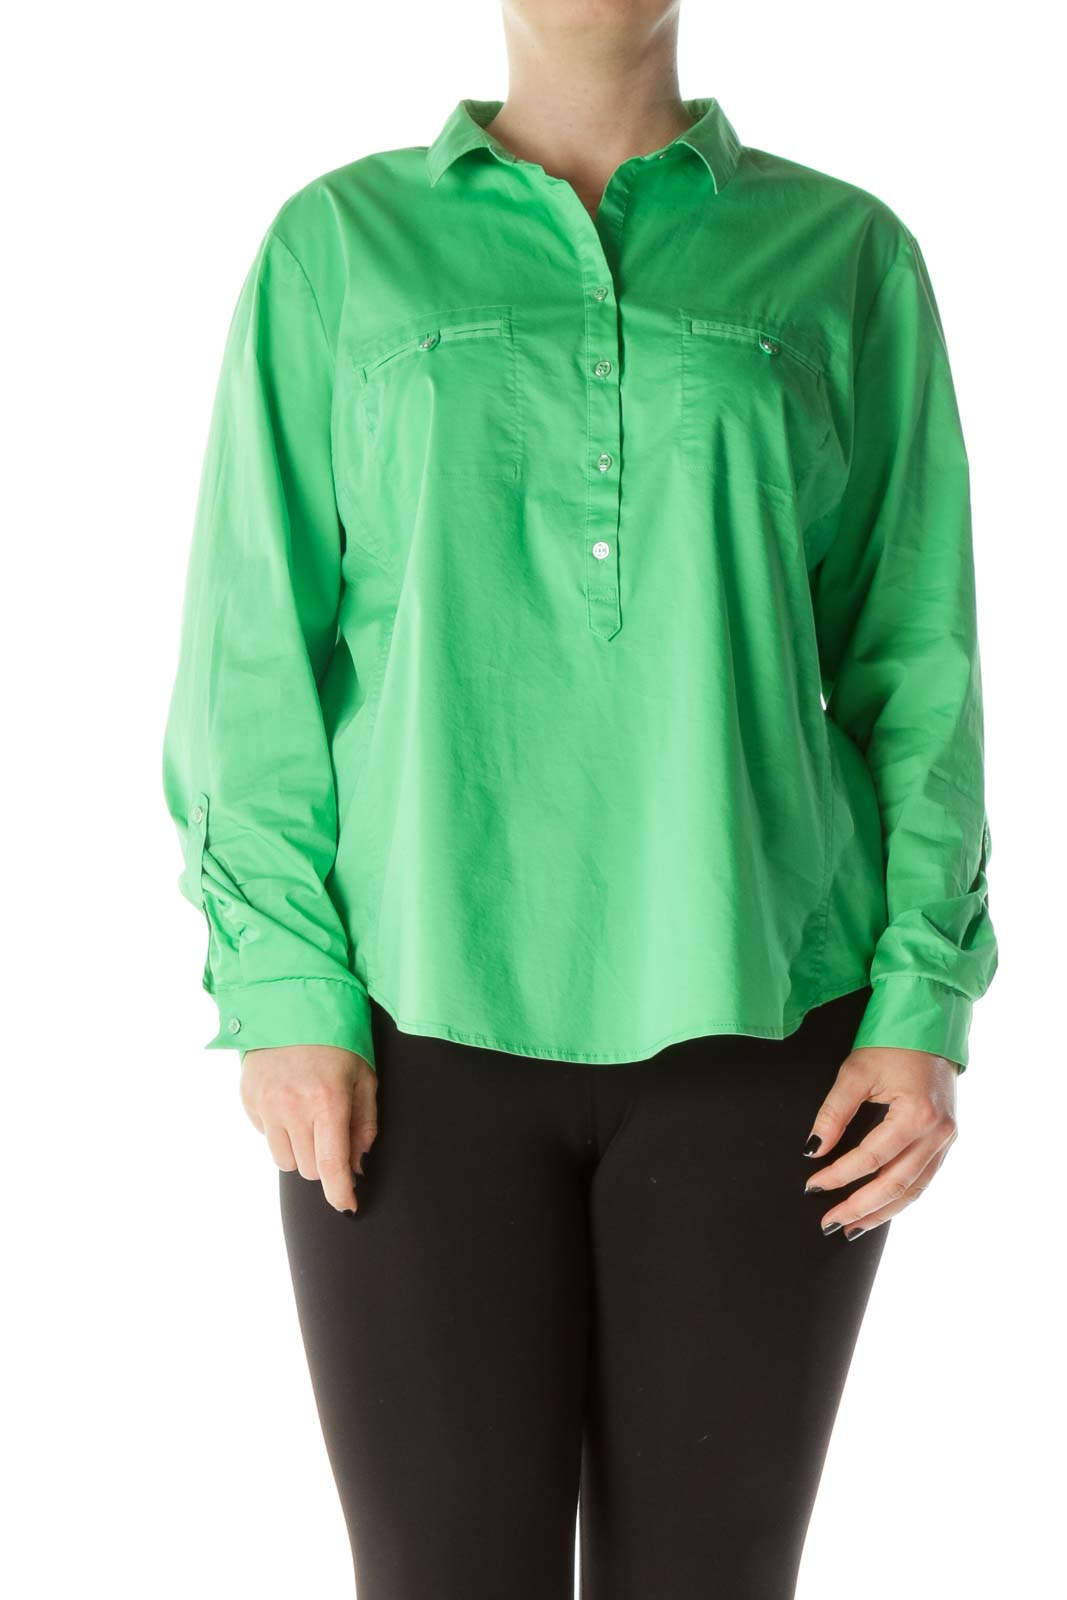 Lime Green Buttoned Long Sleeve Collared Shirt